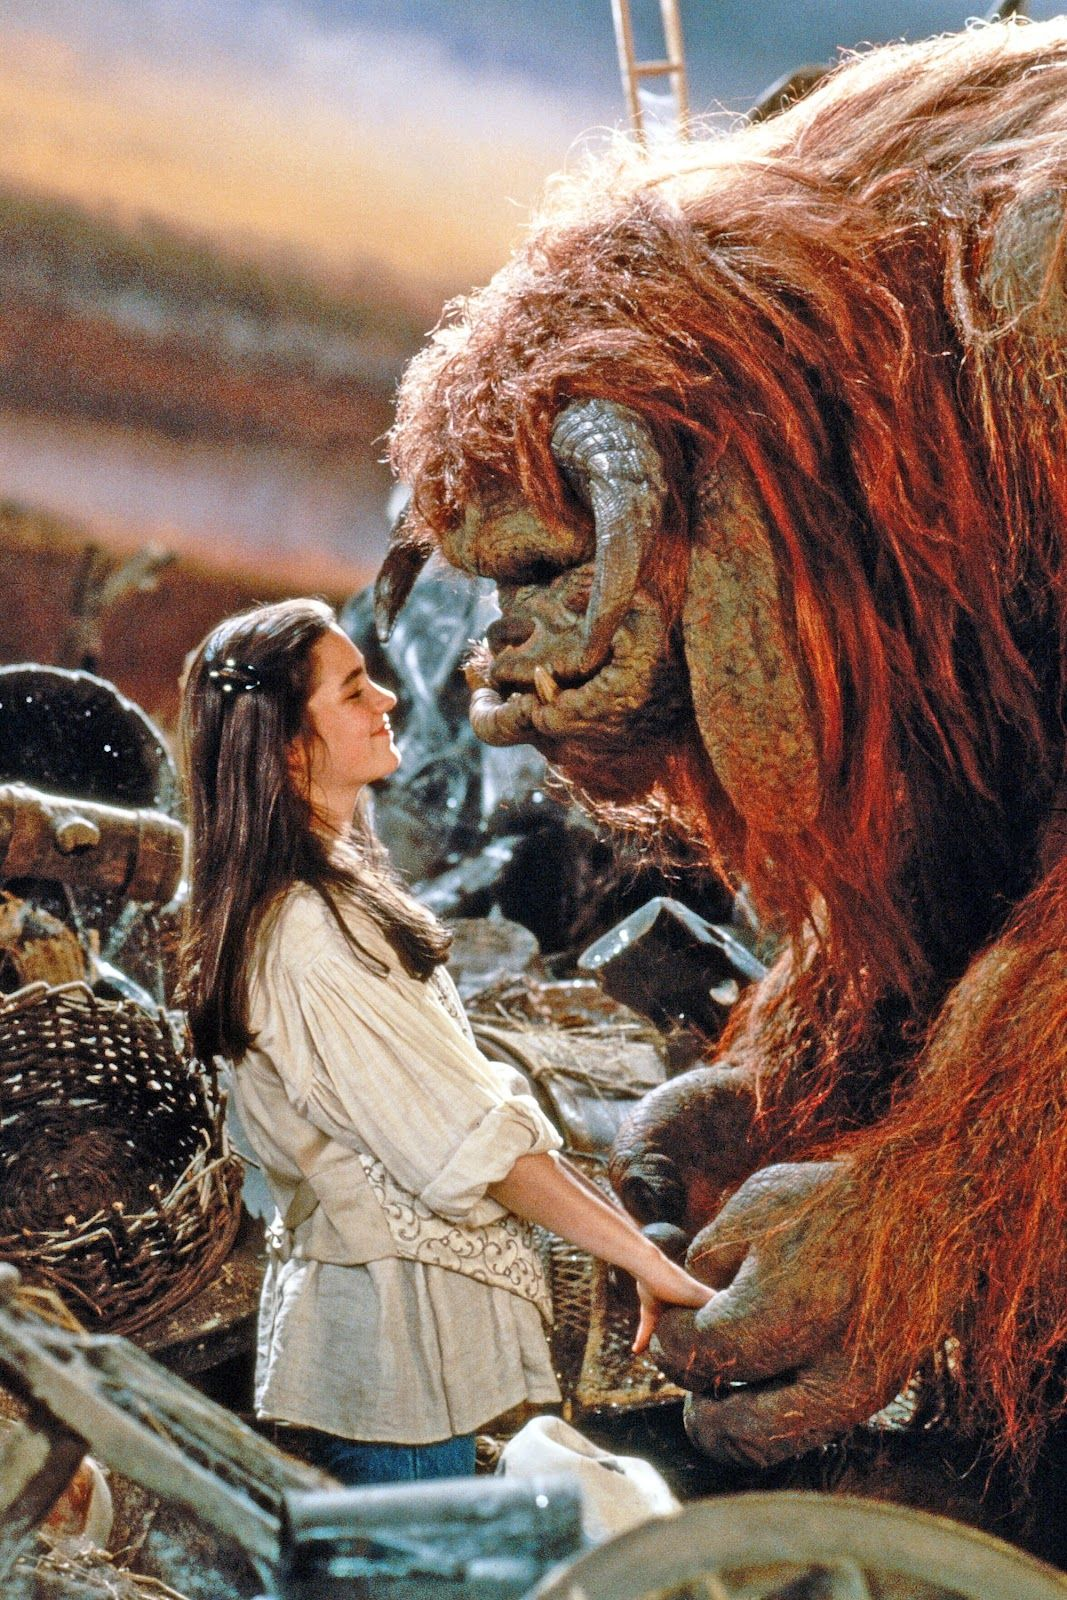 Sarah & Ludo from Labyrinth